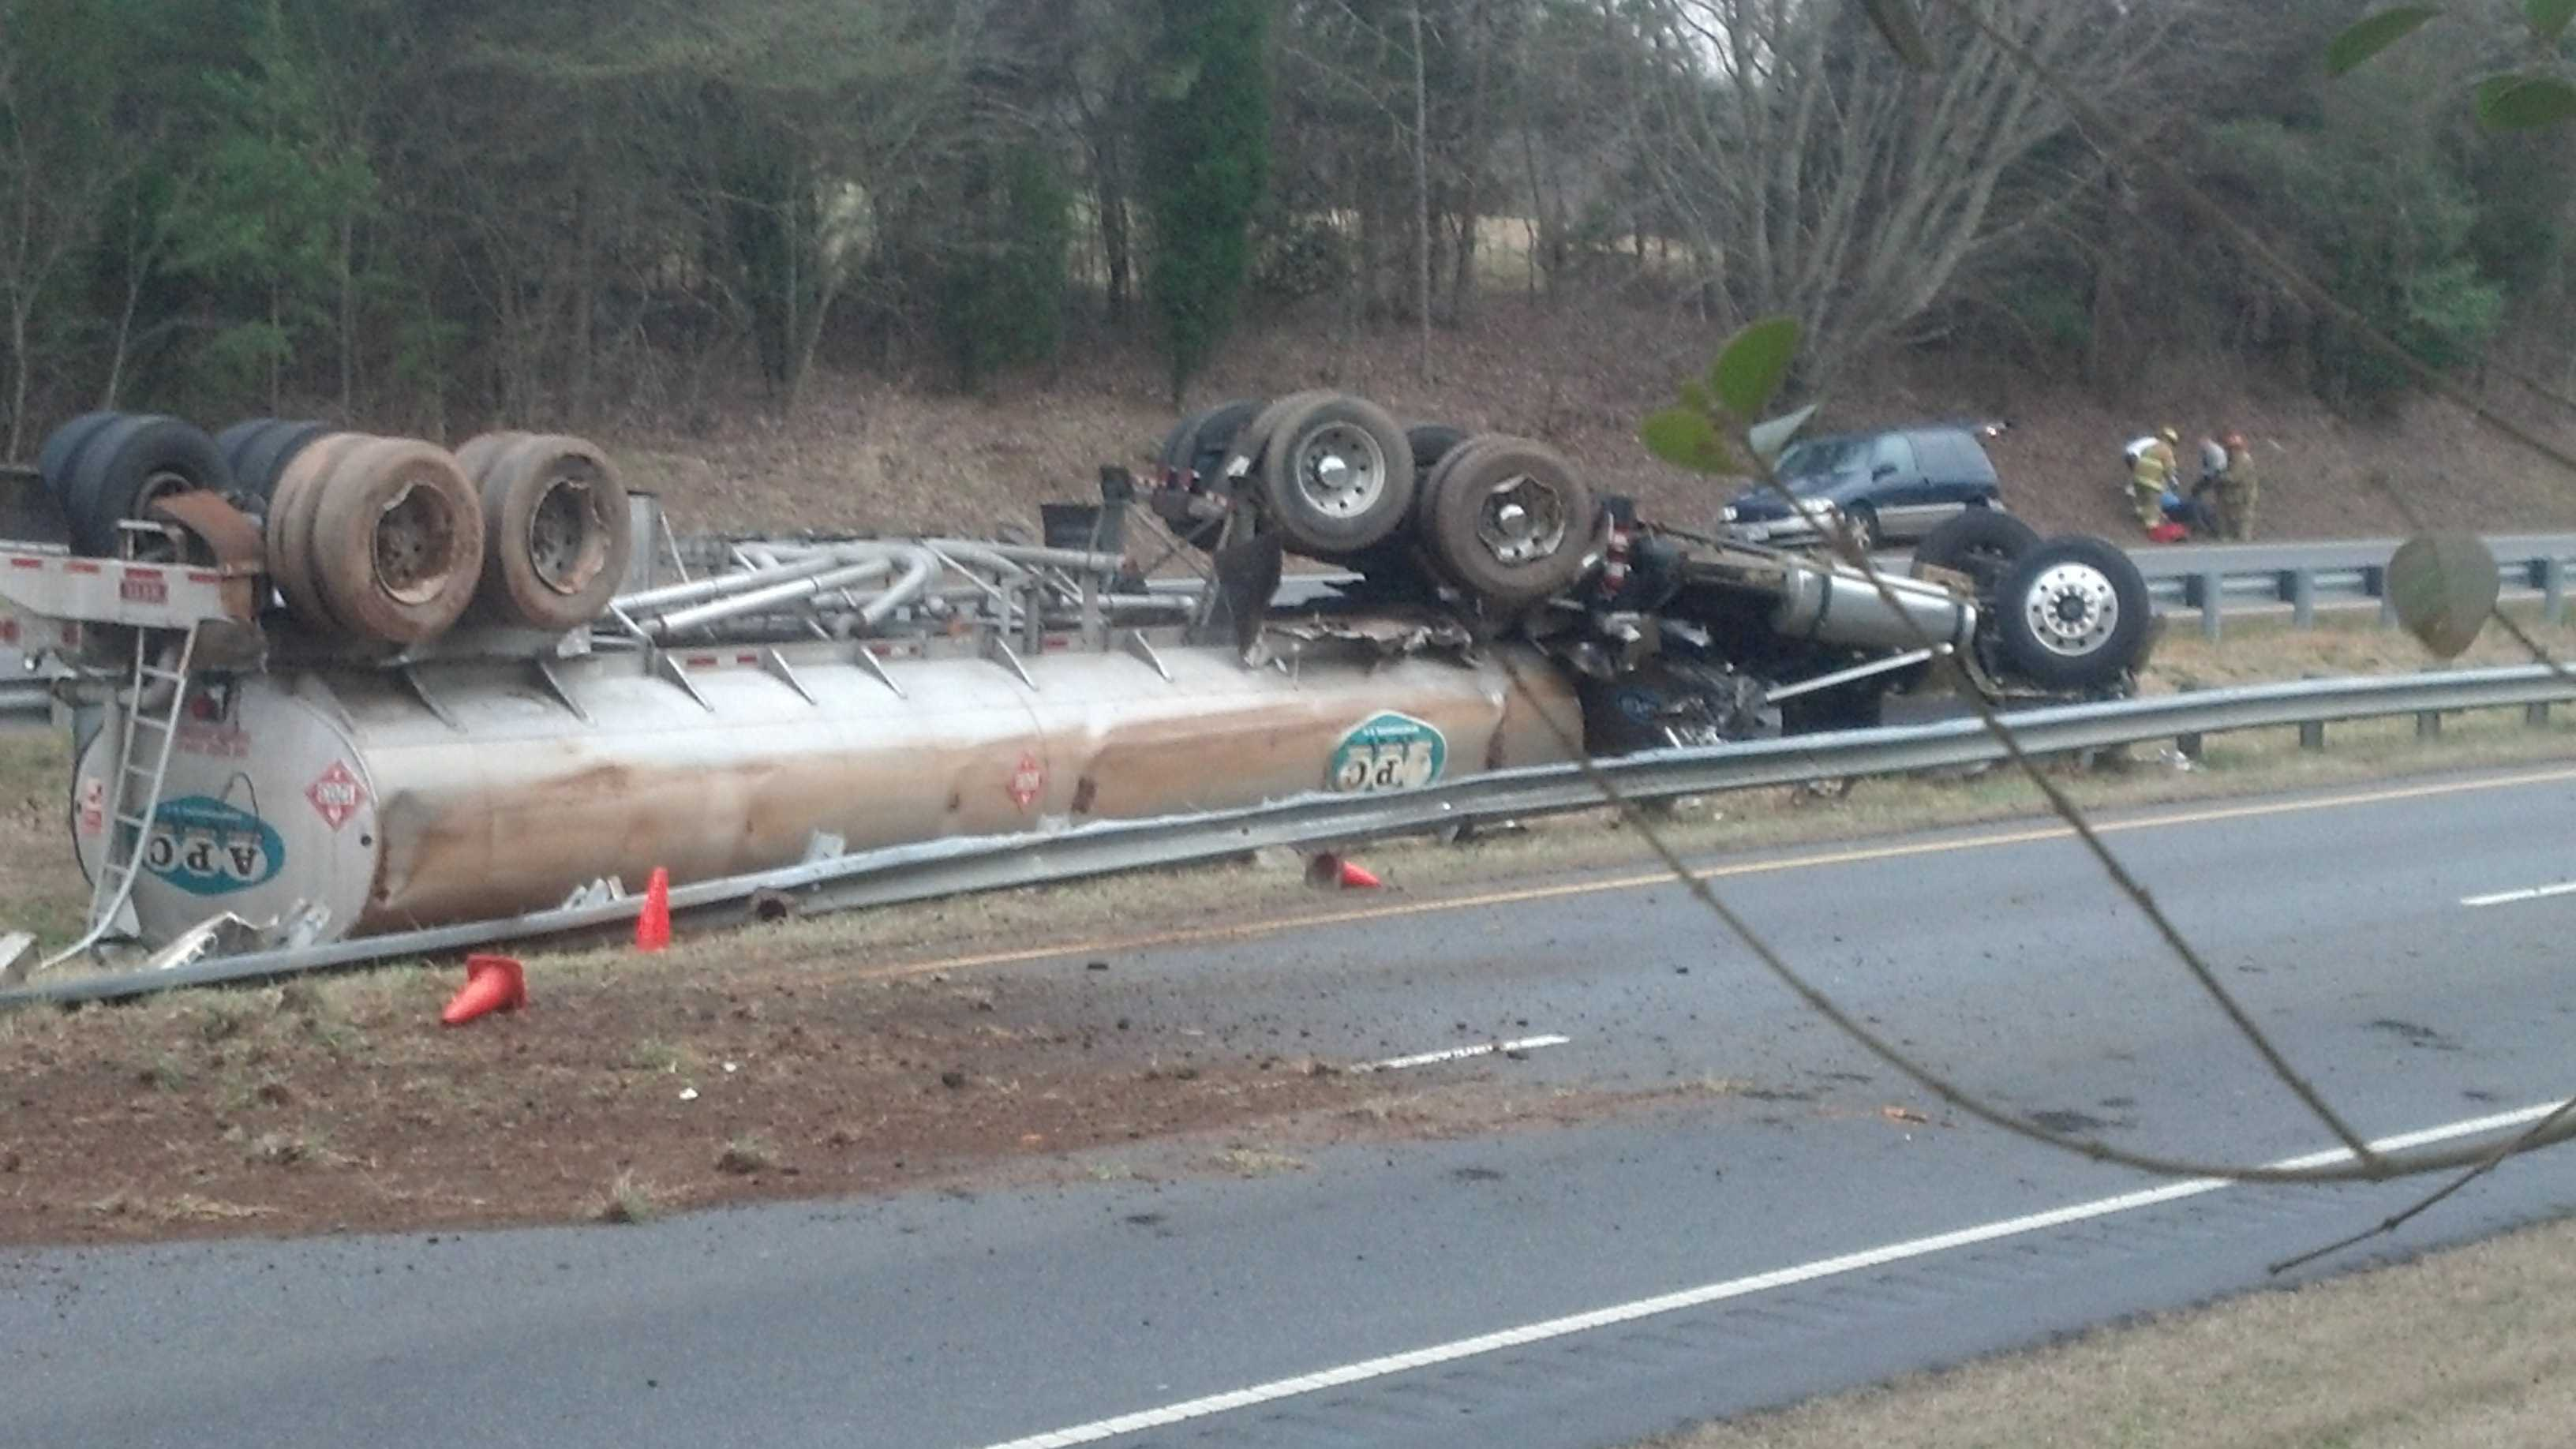 Tanker truck crashes on U.S. 421